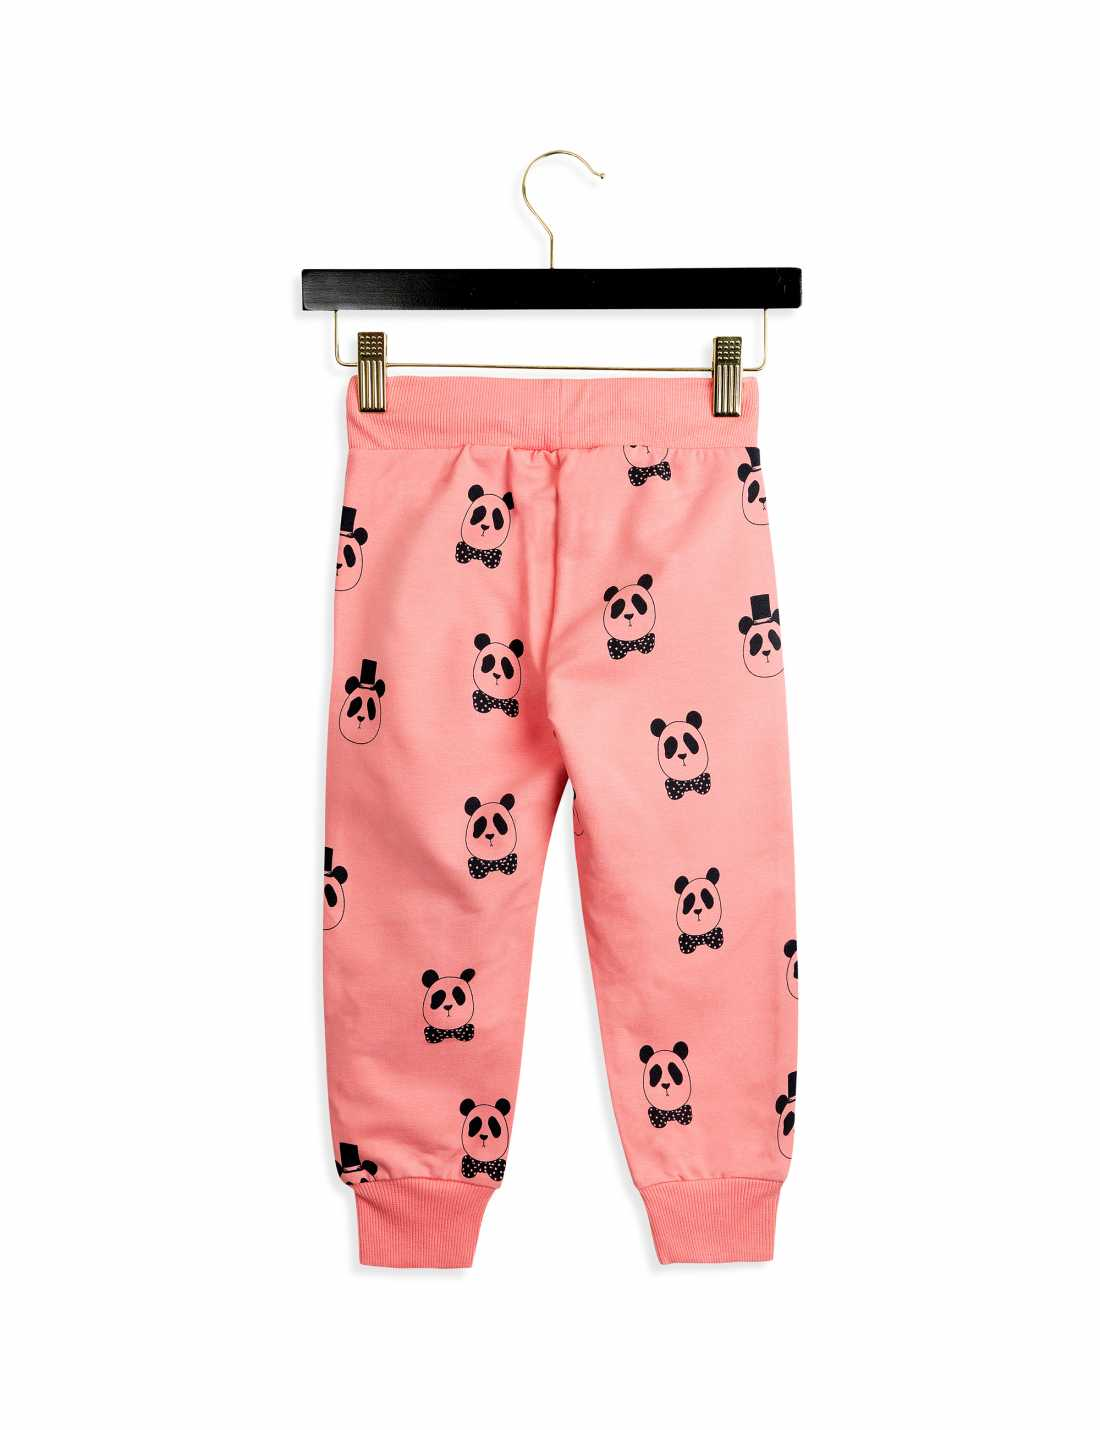 Panda Sweatpants